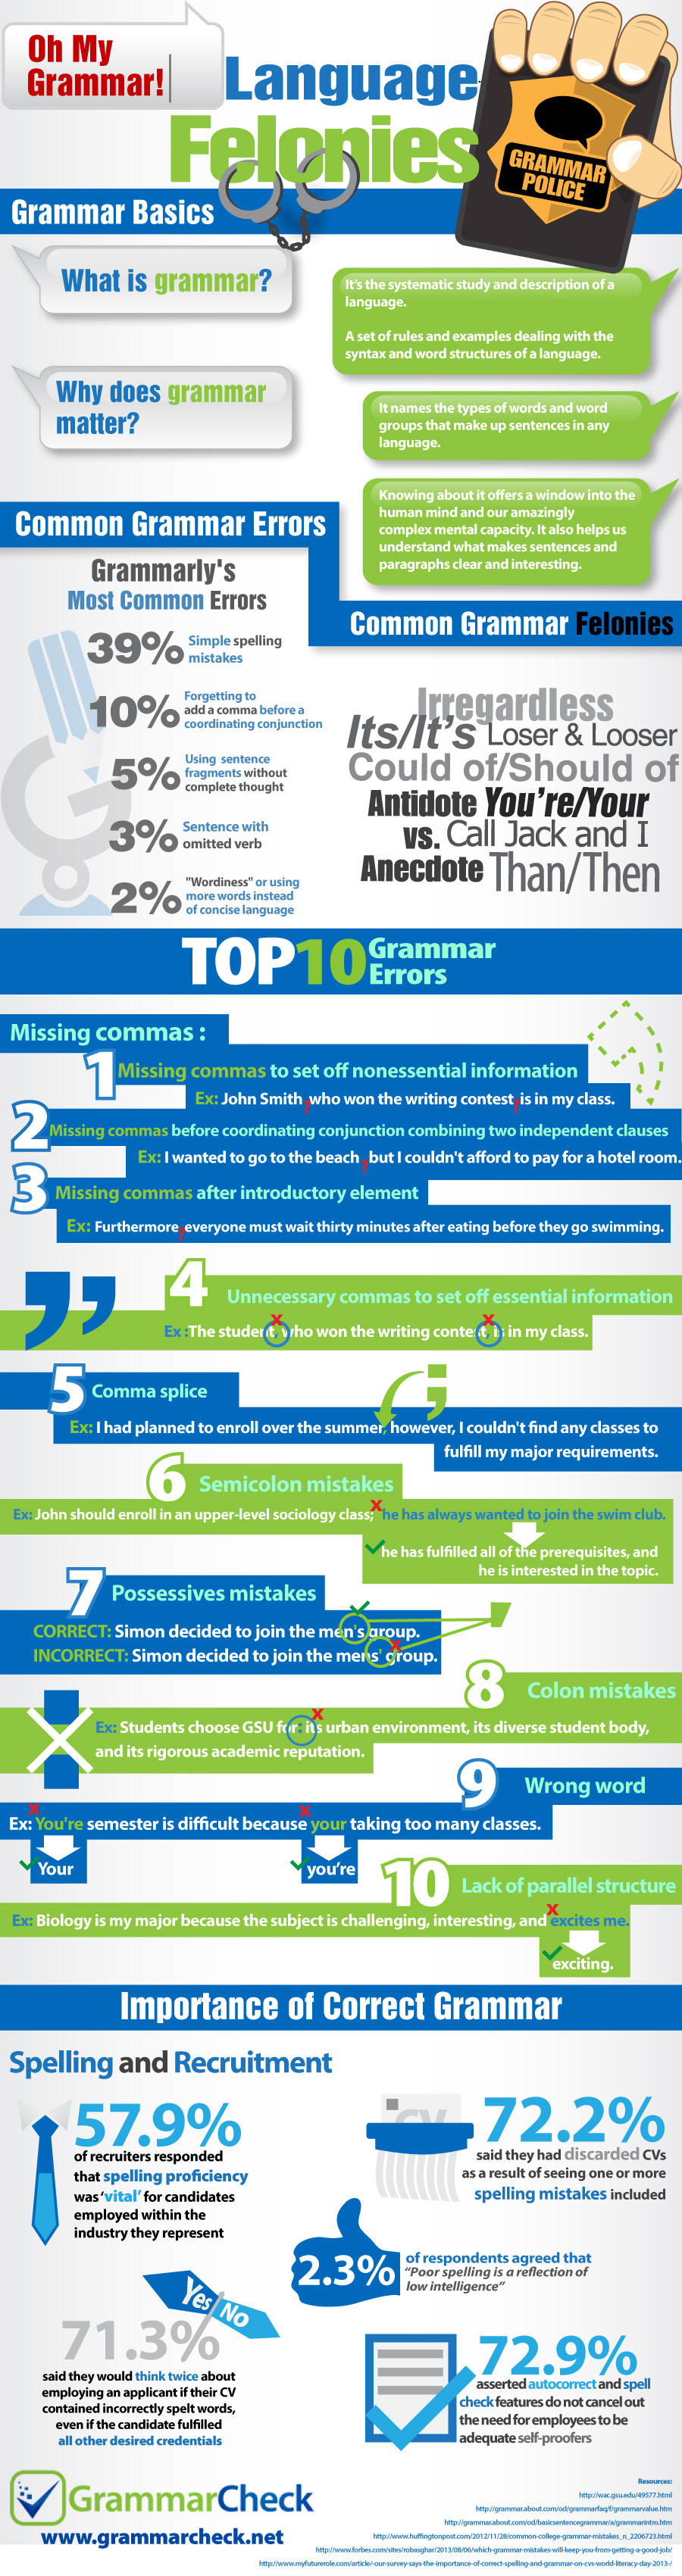 Common Grammar Errors Infographic